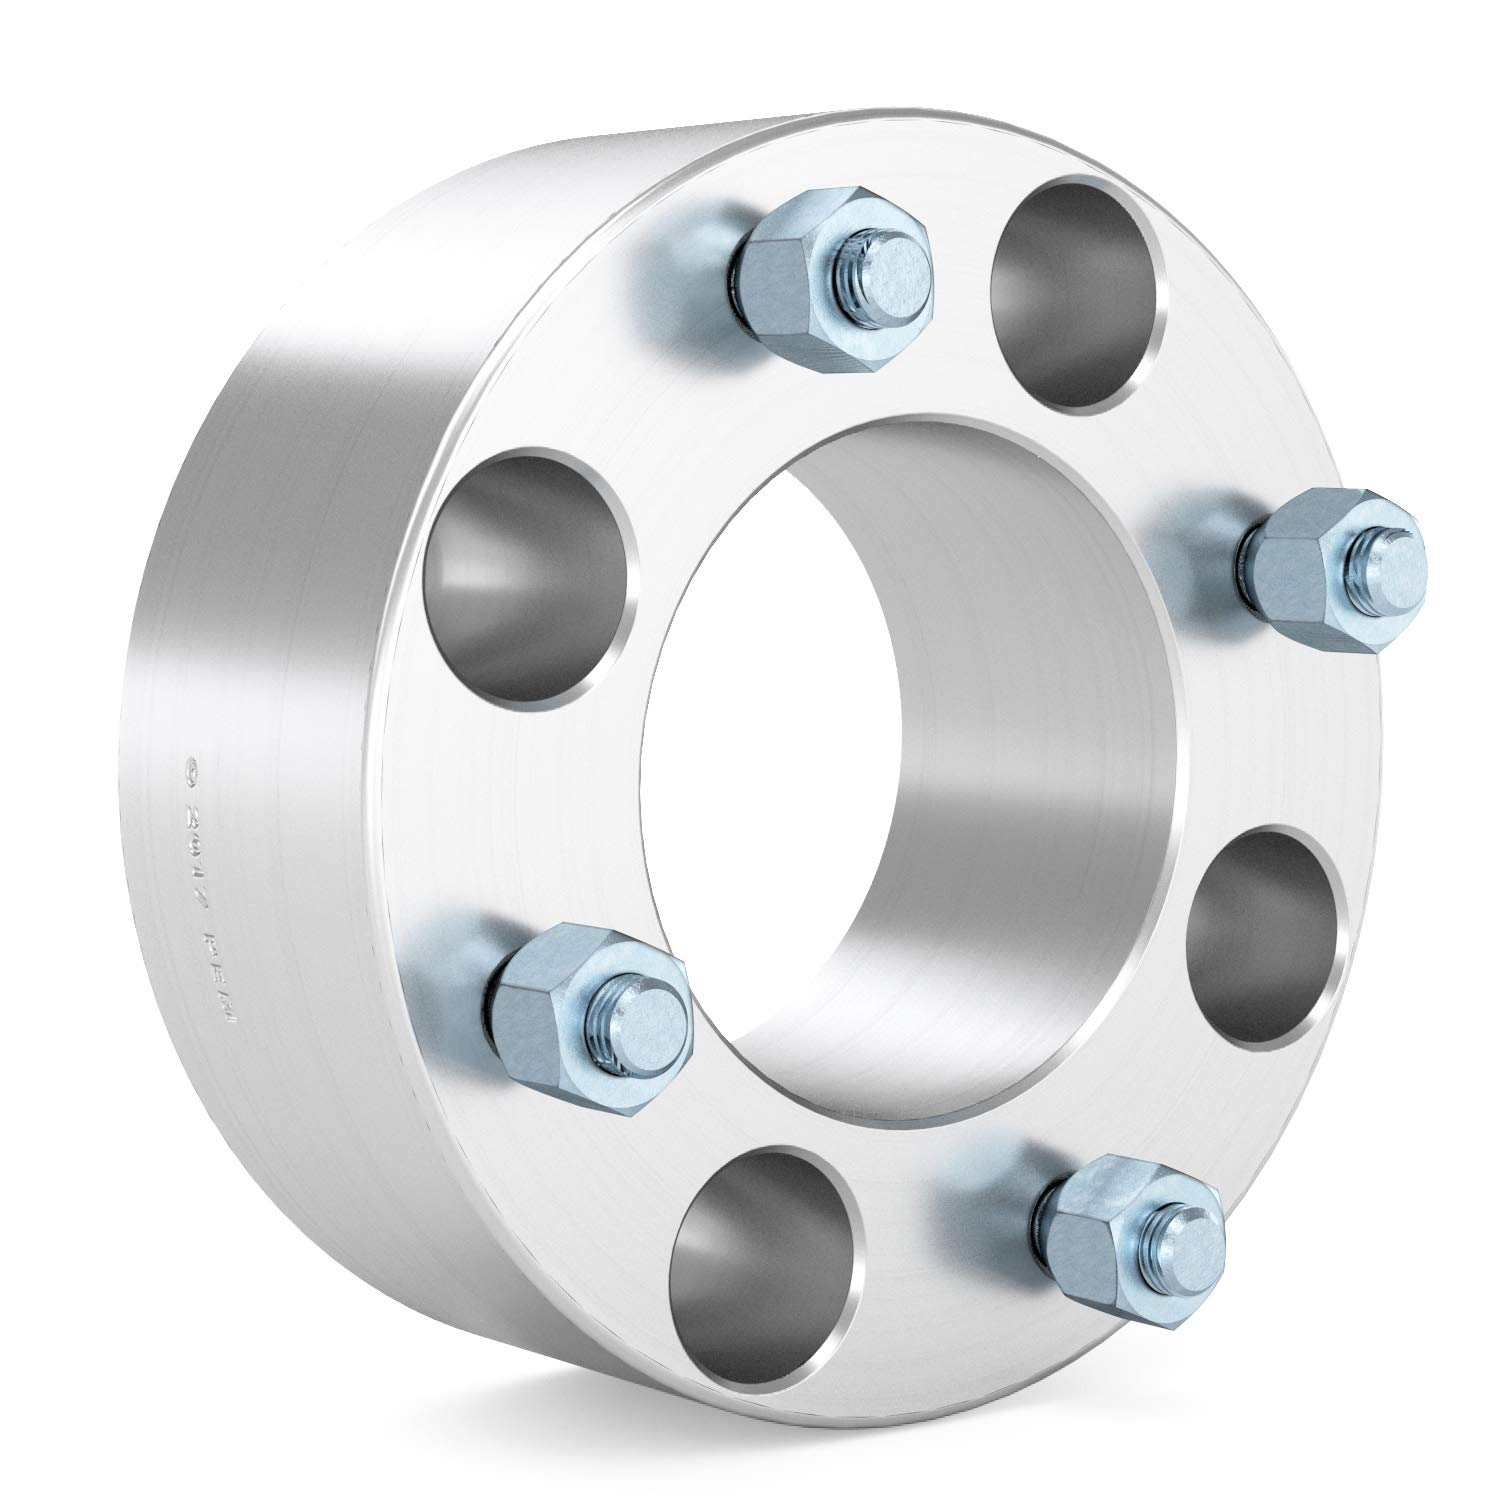 Wildcat 1000 4WD Precision European Motorwerks 4347569536 4 Prowler XT 550 650 700 4x4 2 Thick 4x115 ATV Wheel Spacers with 10x1.25 Studs//Nuts for Arctic Cat 250 300 400 500 650 700 1000 RockTrix for Precision European -